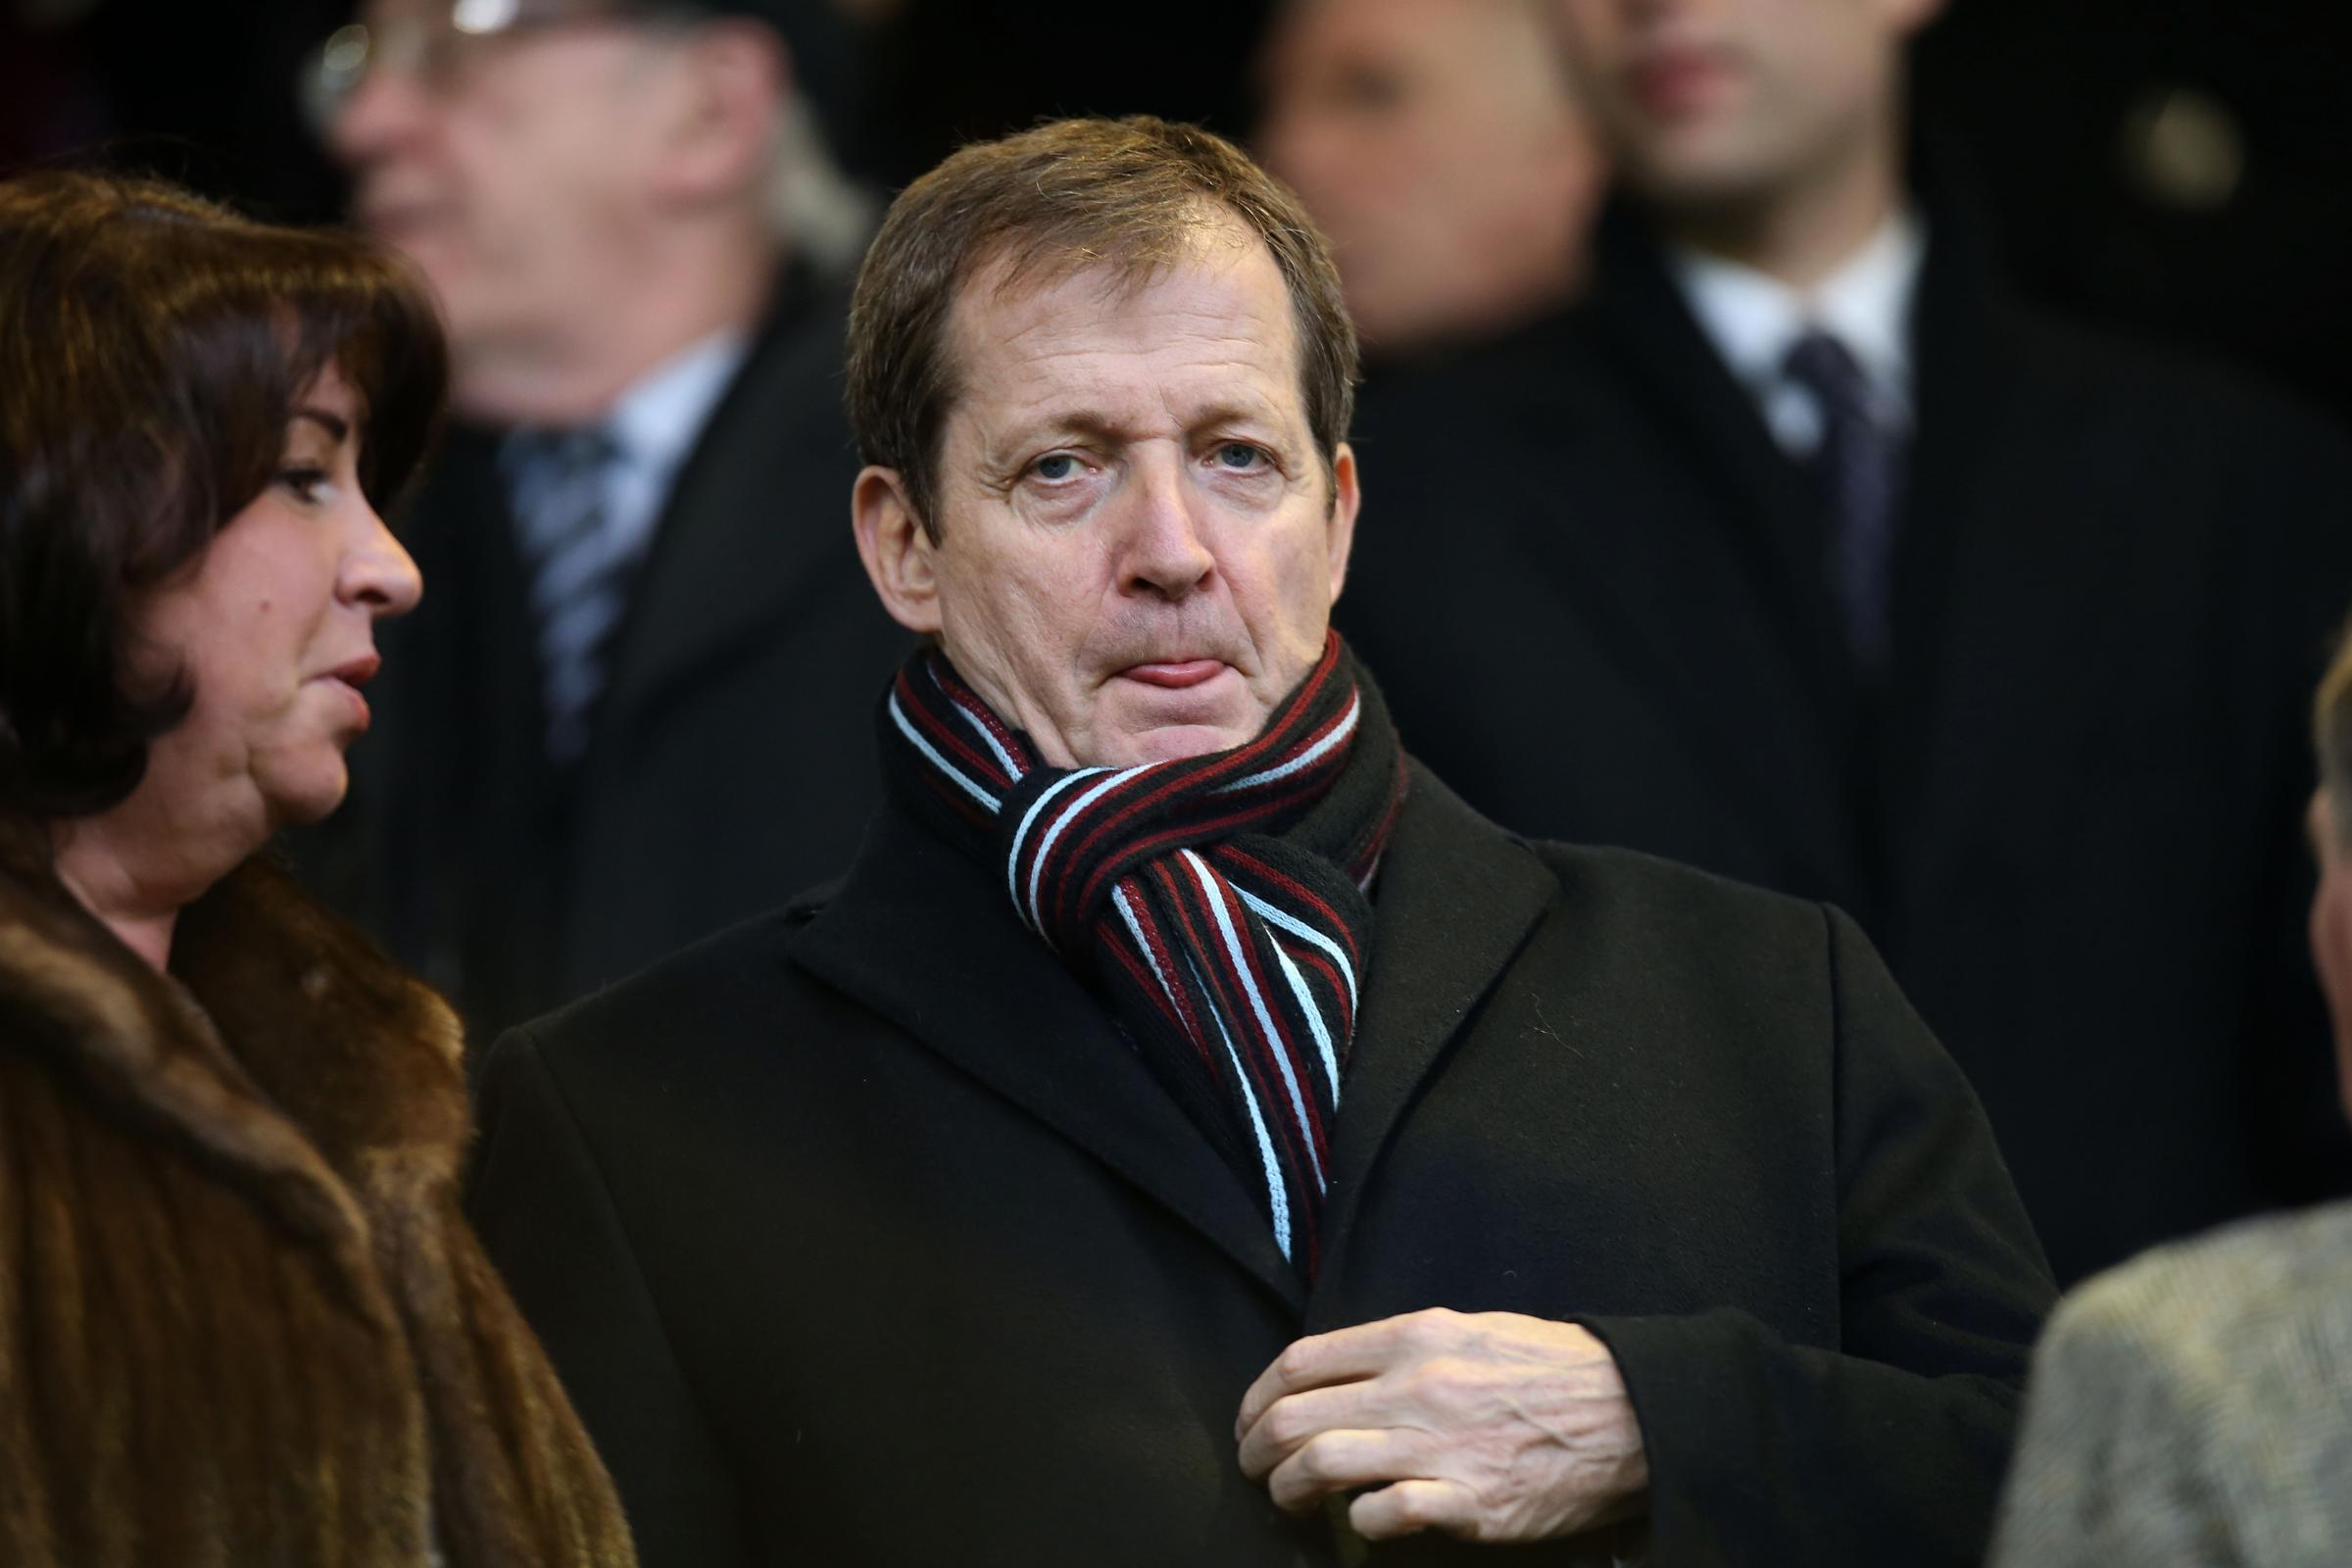 Alastair Campbell's alcoholism made him 'manipulative' and 'eratic'